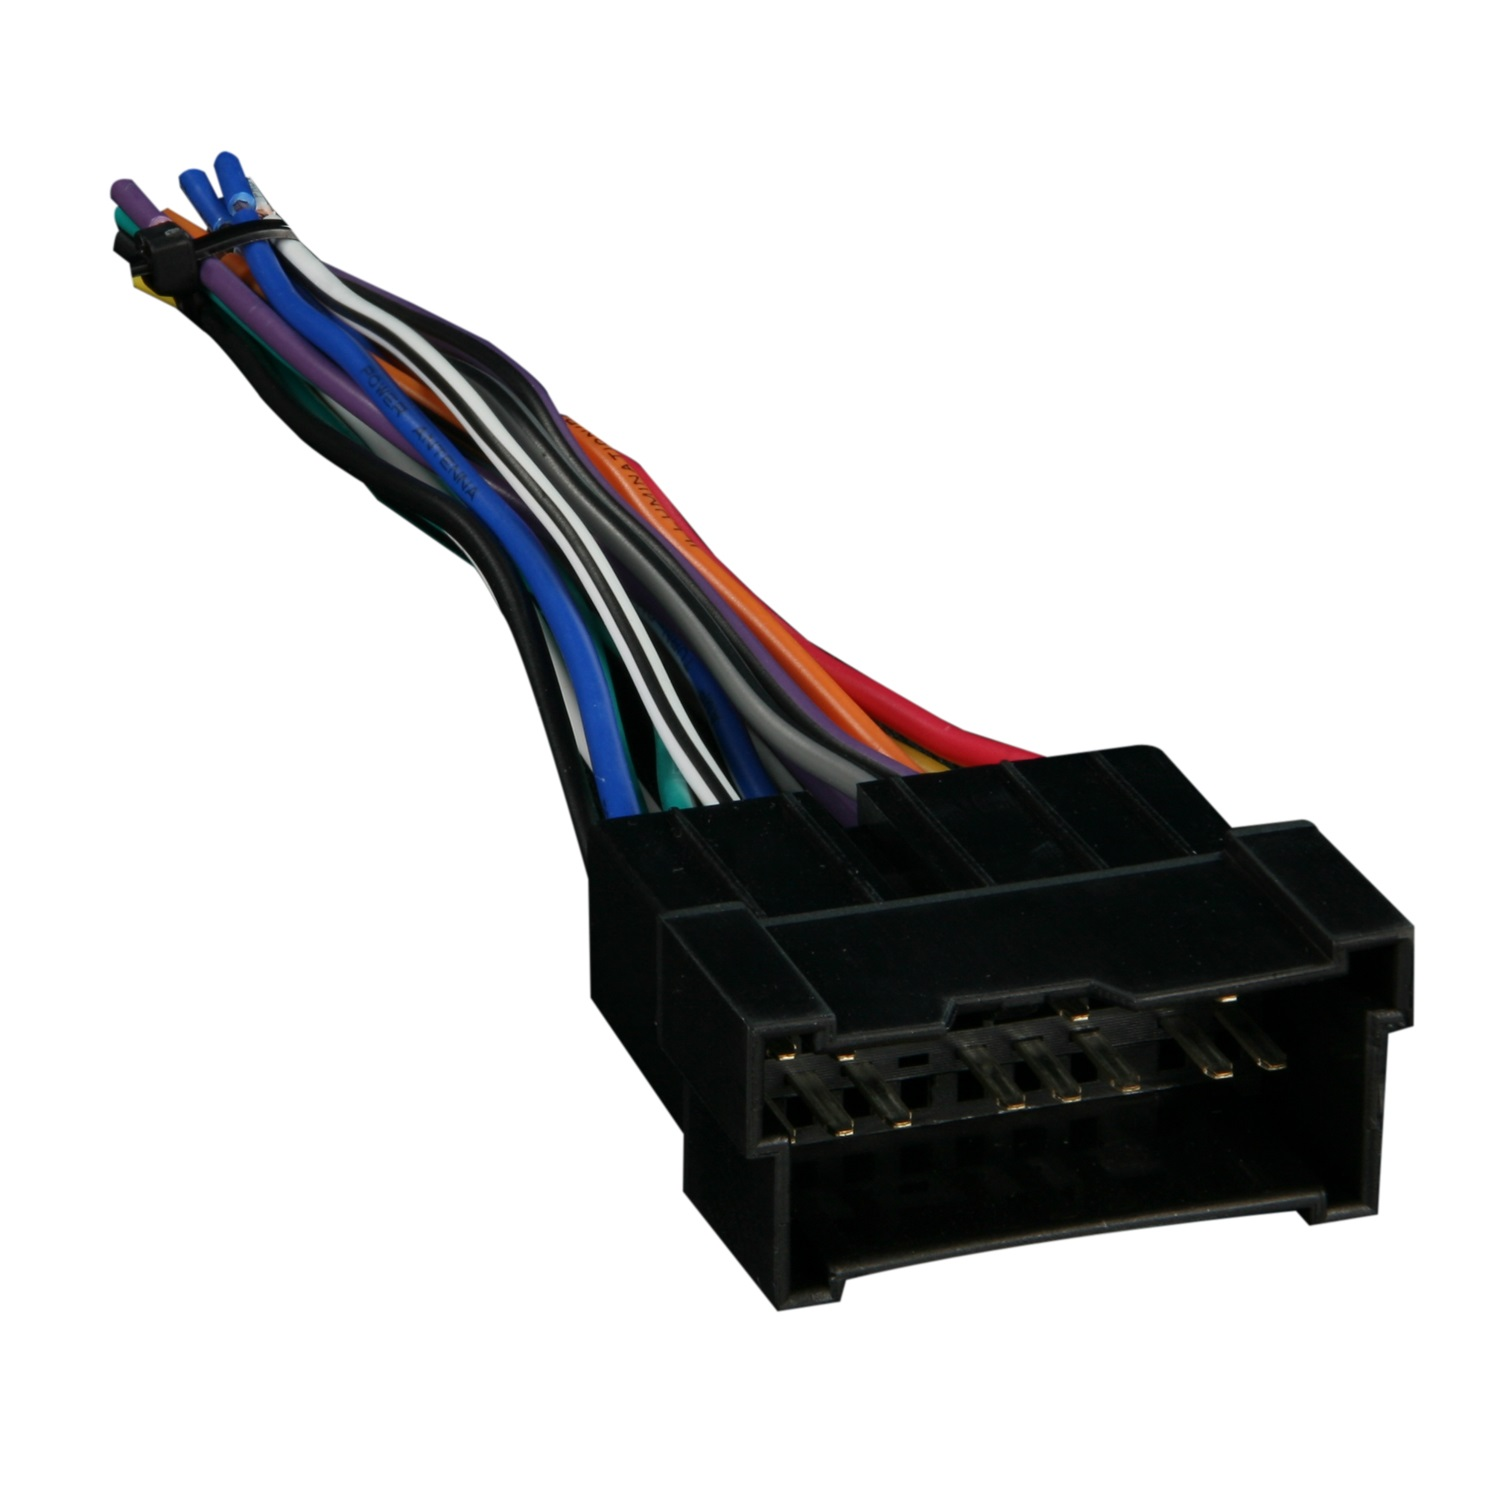 small resolution of metra electronics 70 7301 turbowire radio wiring harness walmart metra electronics 70 7301 turbowire radio wiring